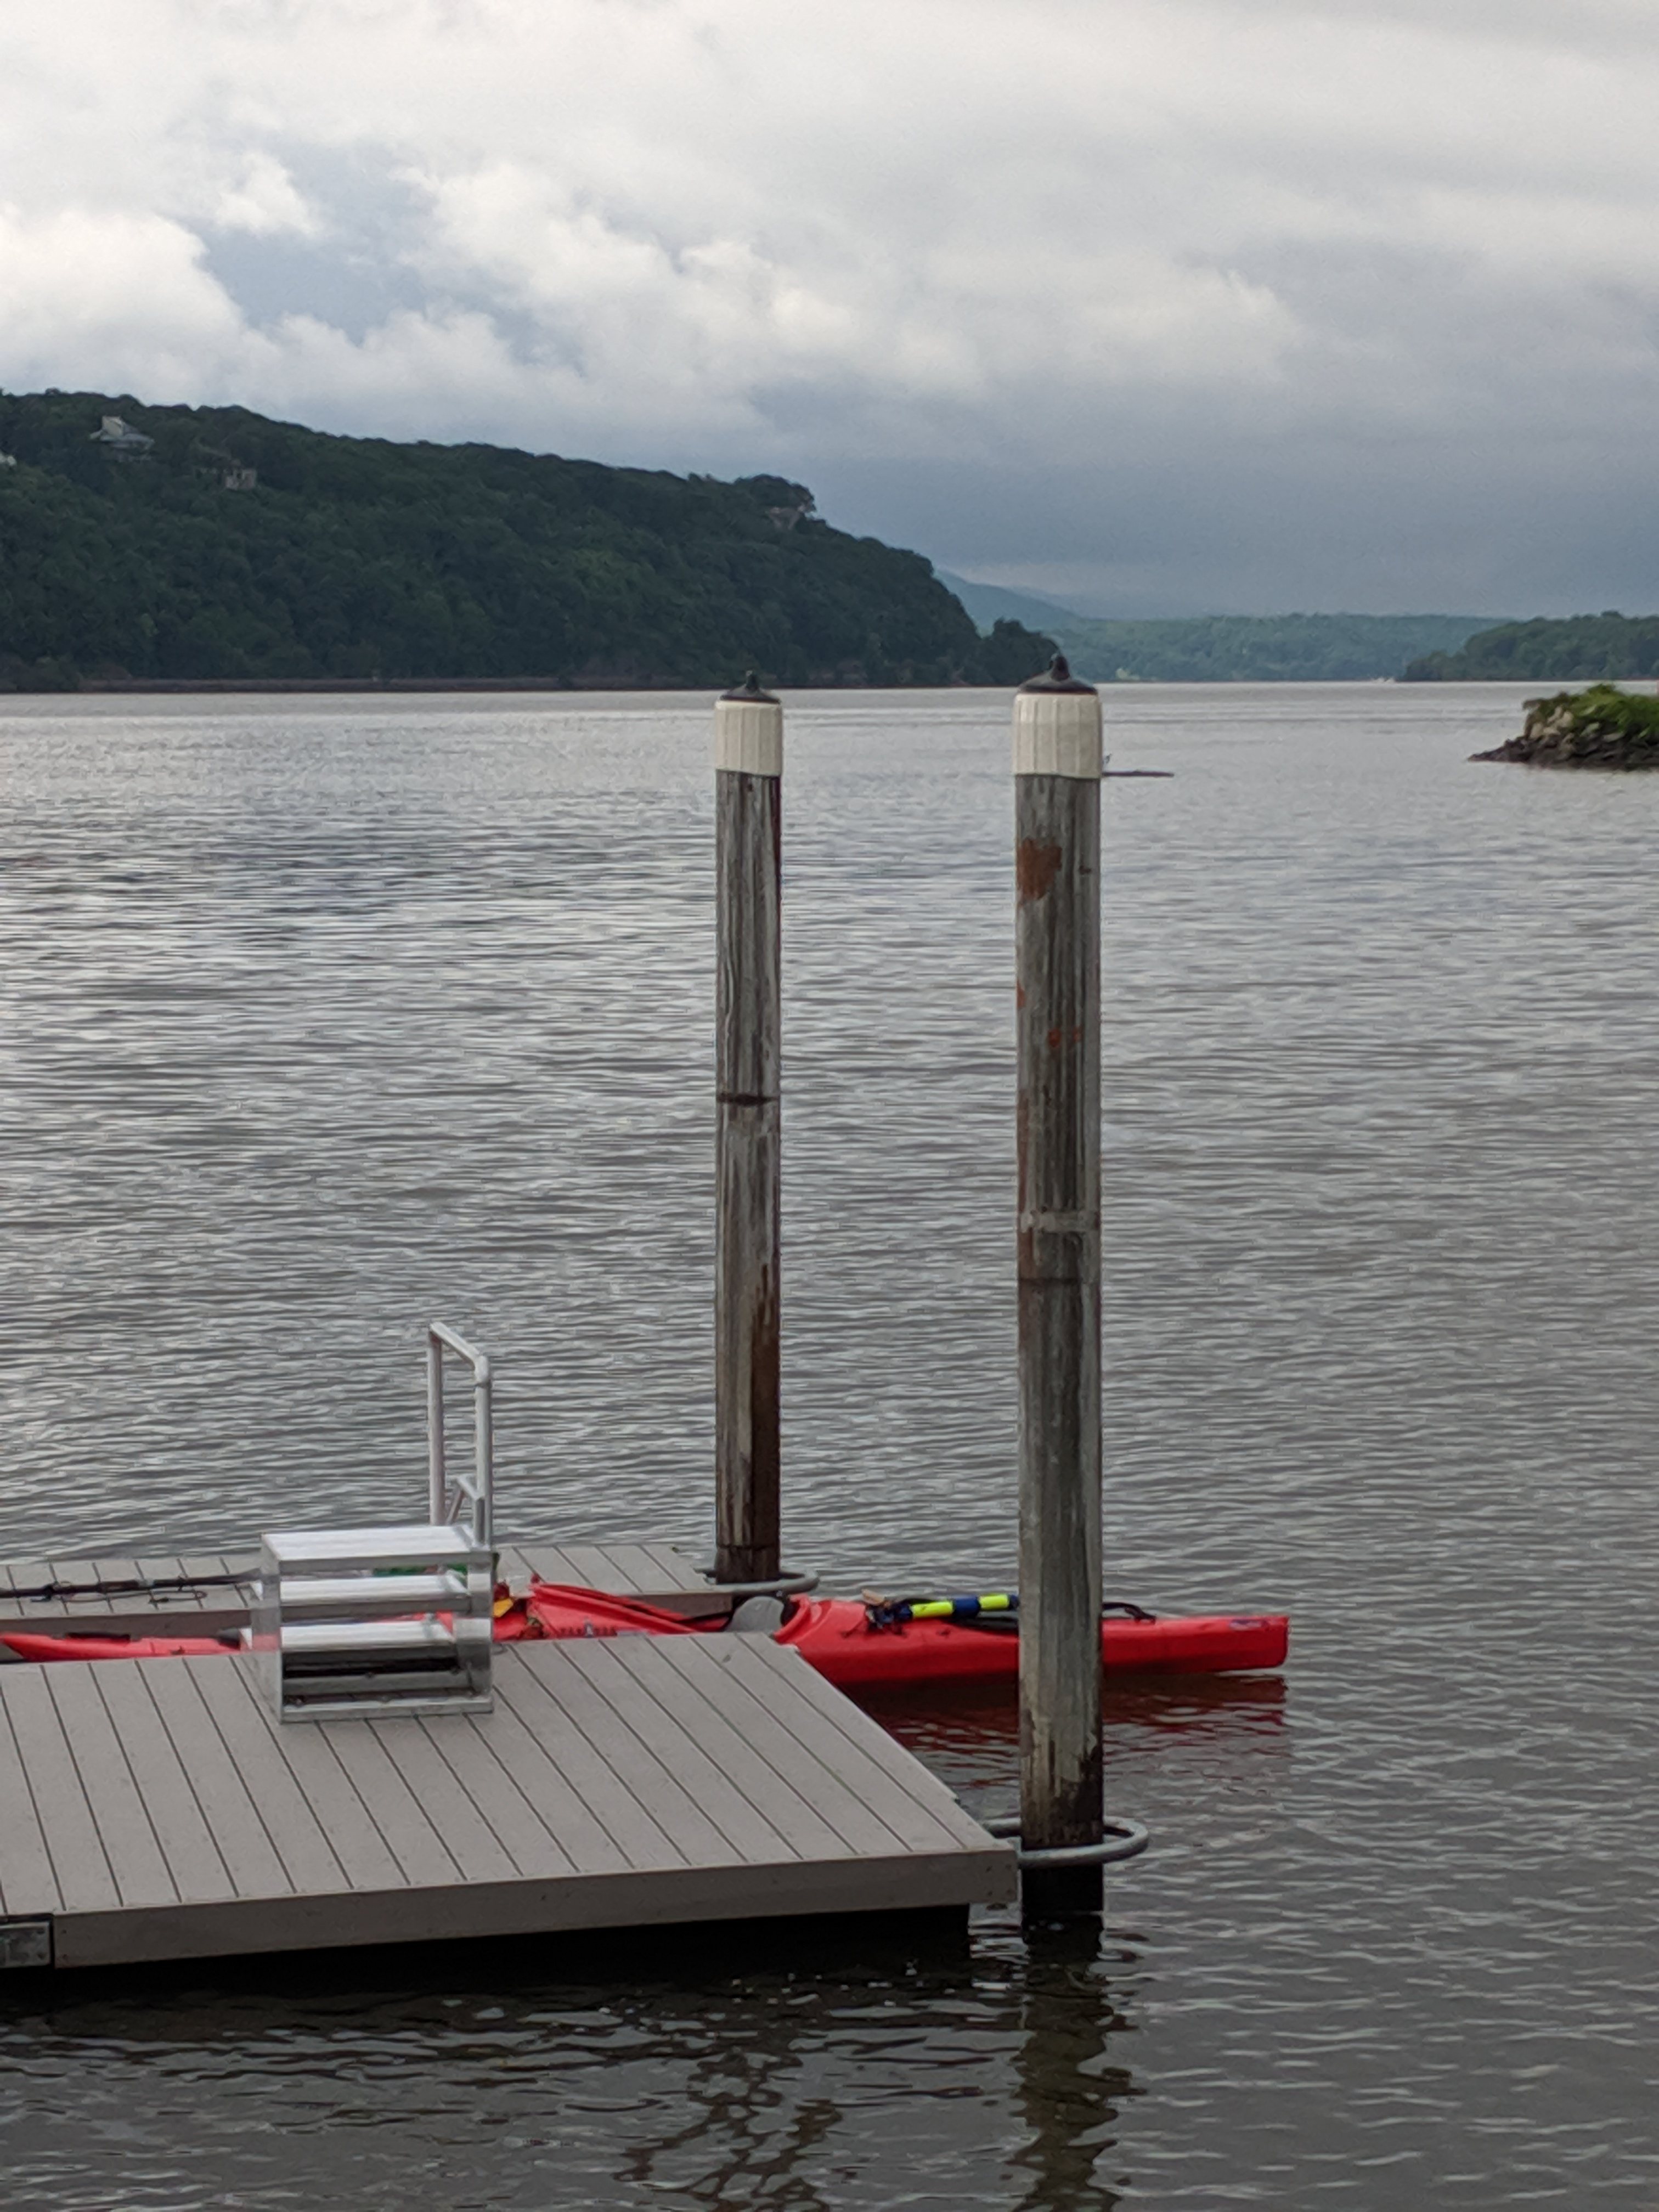 The Hudson River, looking north from Dutchess County's Quiet Cove Riverfront Park in Poughkeepsie.